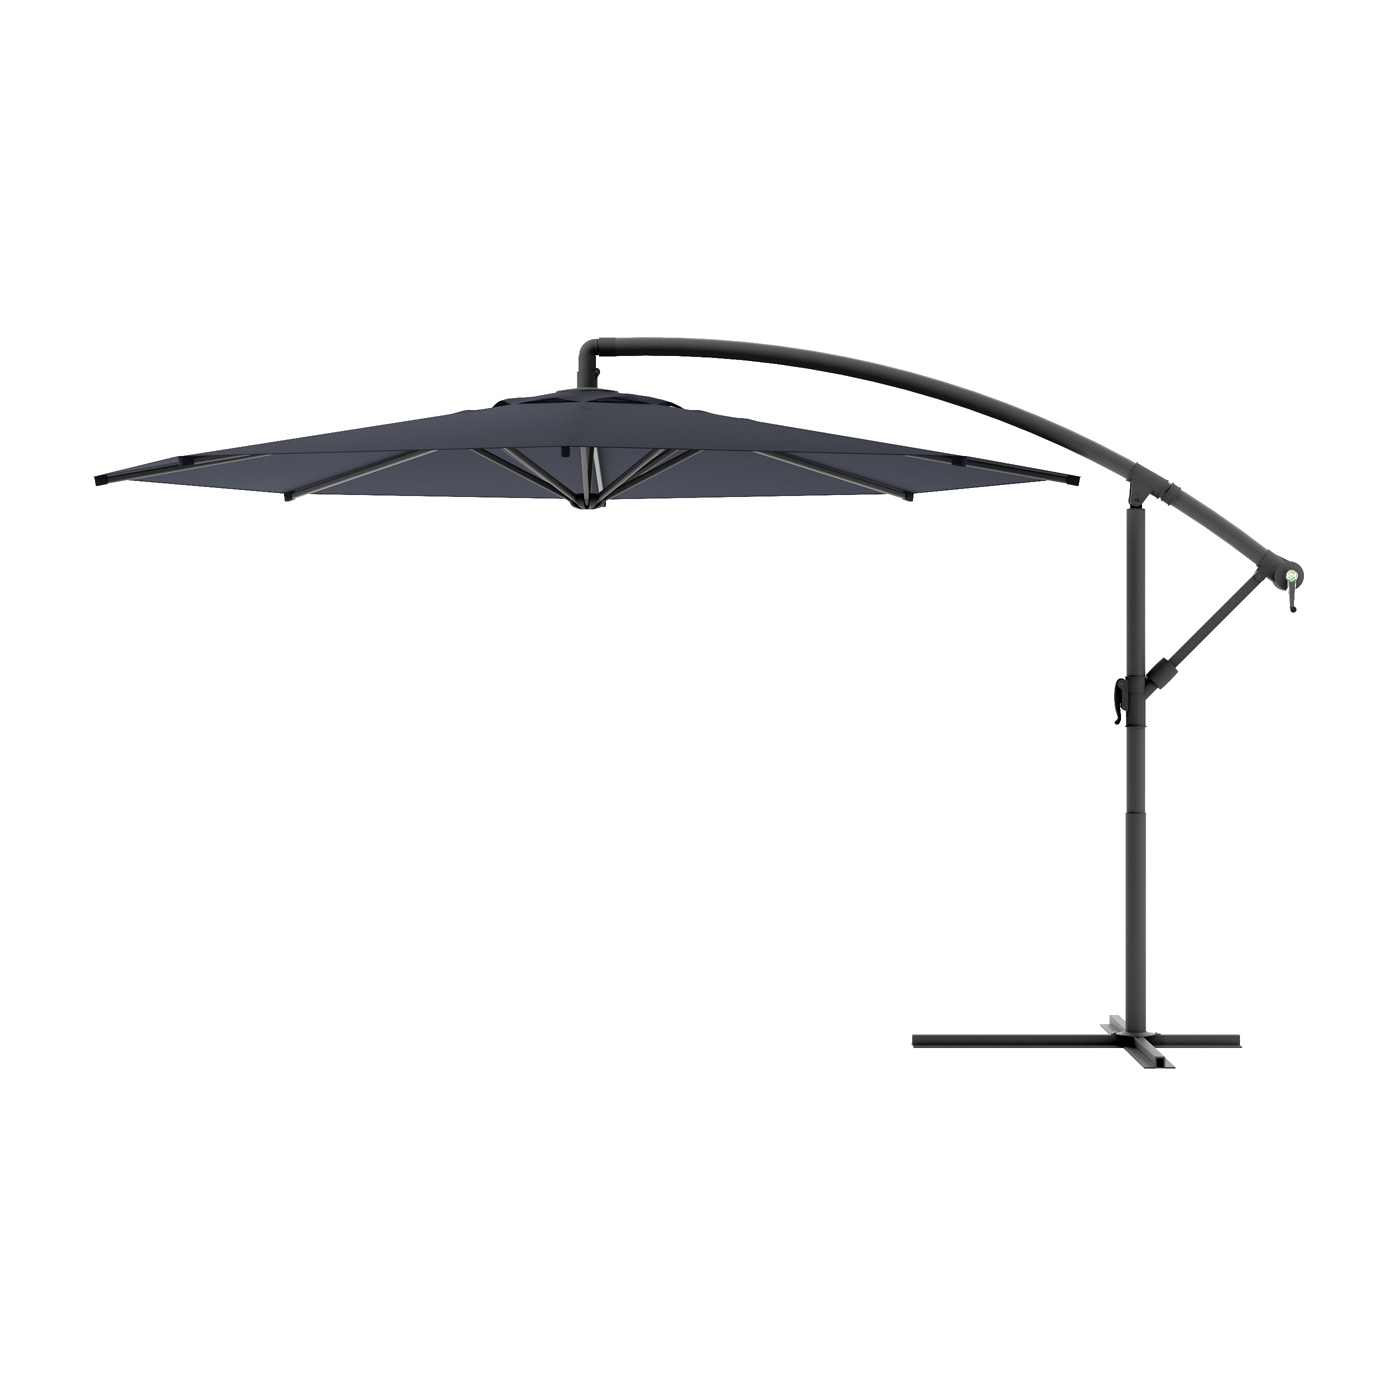 Lowes Cantilever Patio Umbrellas For Fashionable Corliving Ppu 4 Cantilever Patio Umbrella (View 3 of 20)